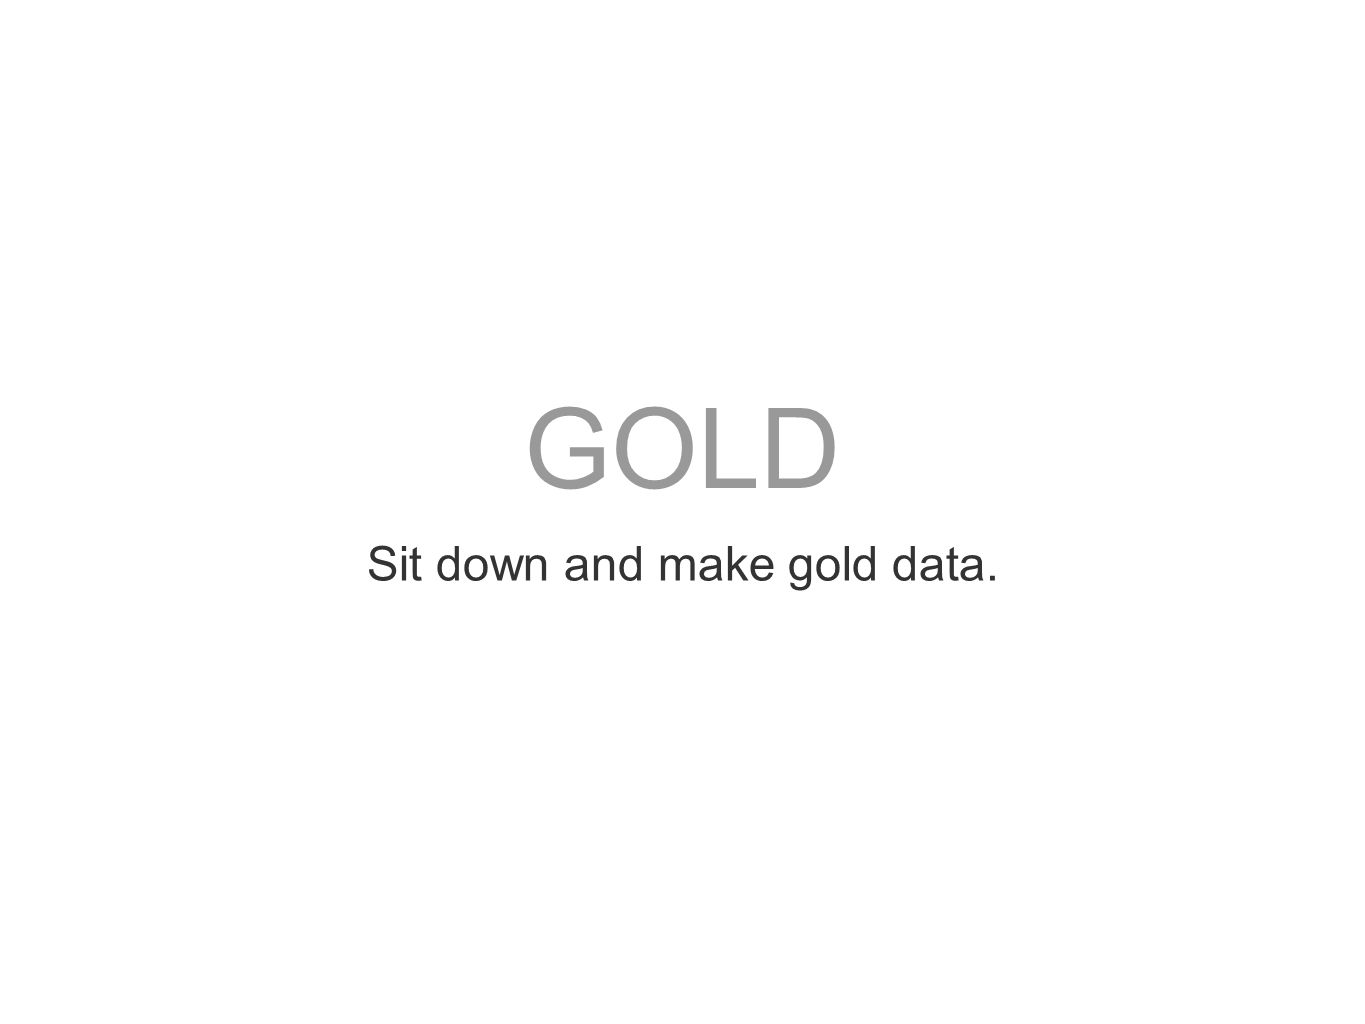 Sit down and make gold data.